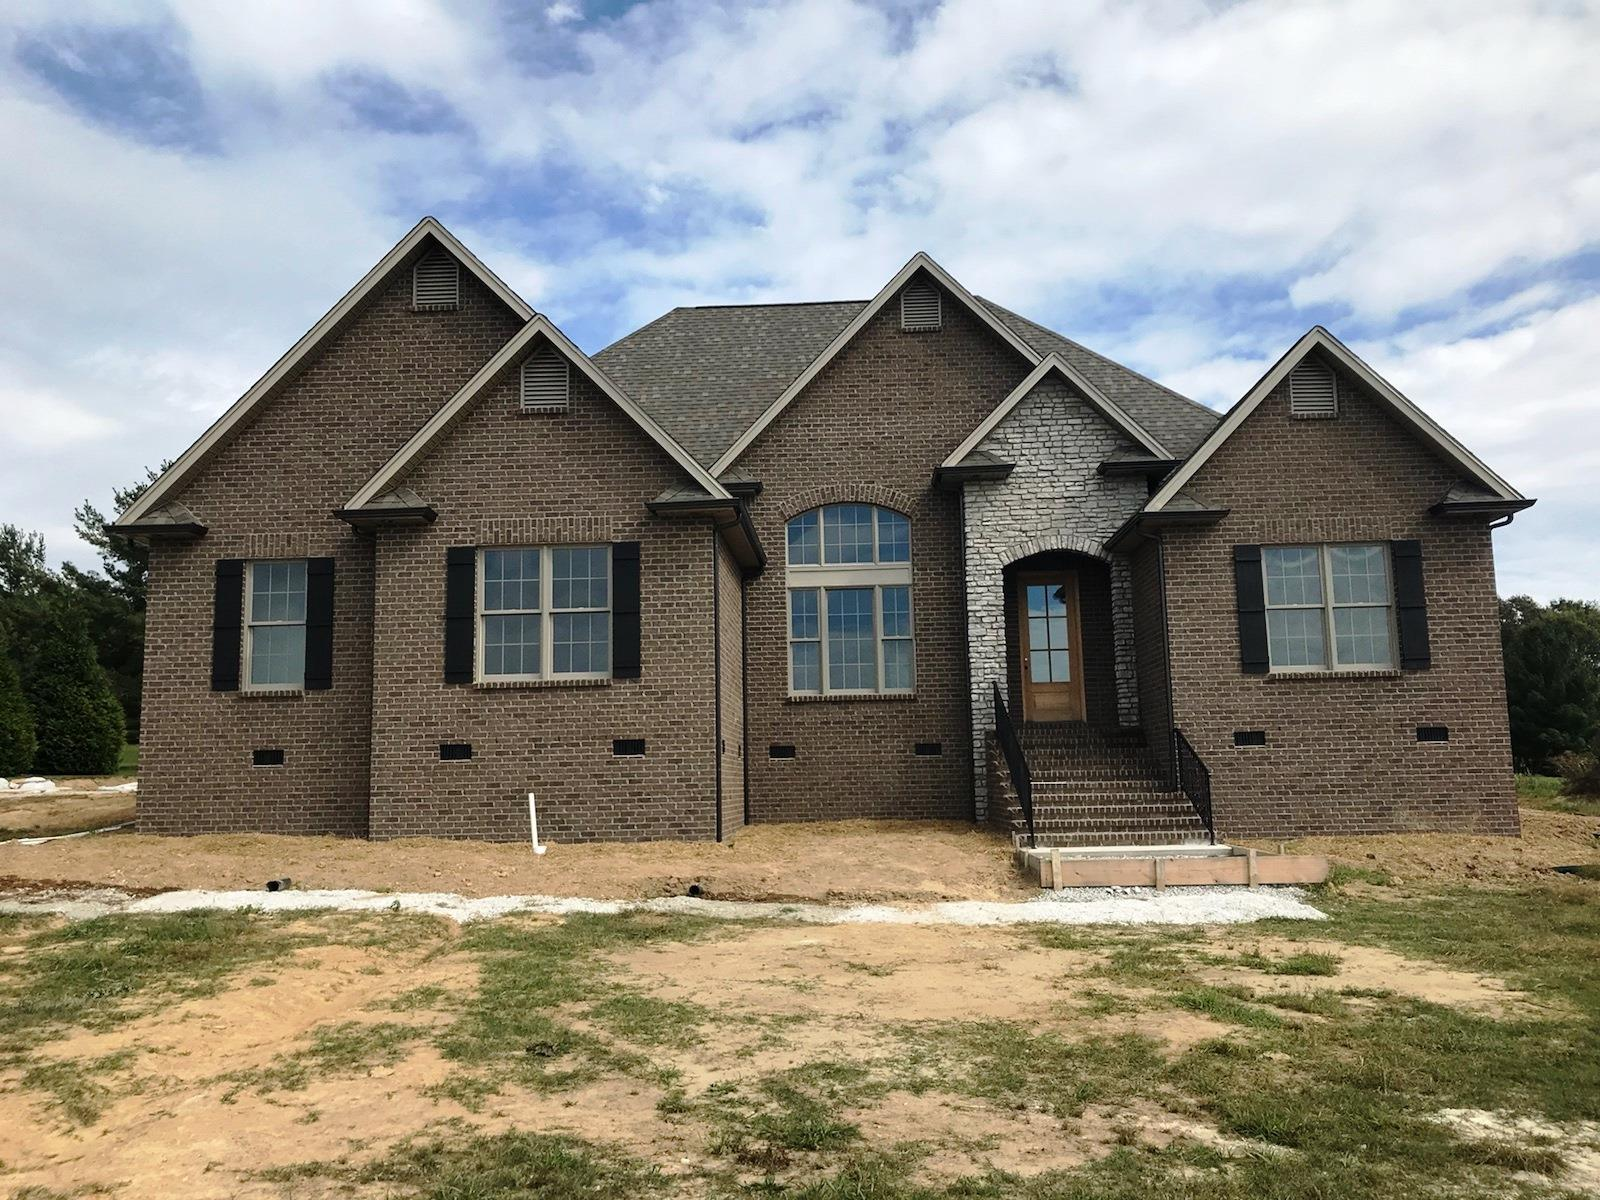 252 Waterford Dr, Manchester, Tennessee